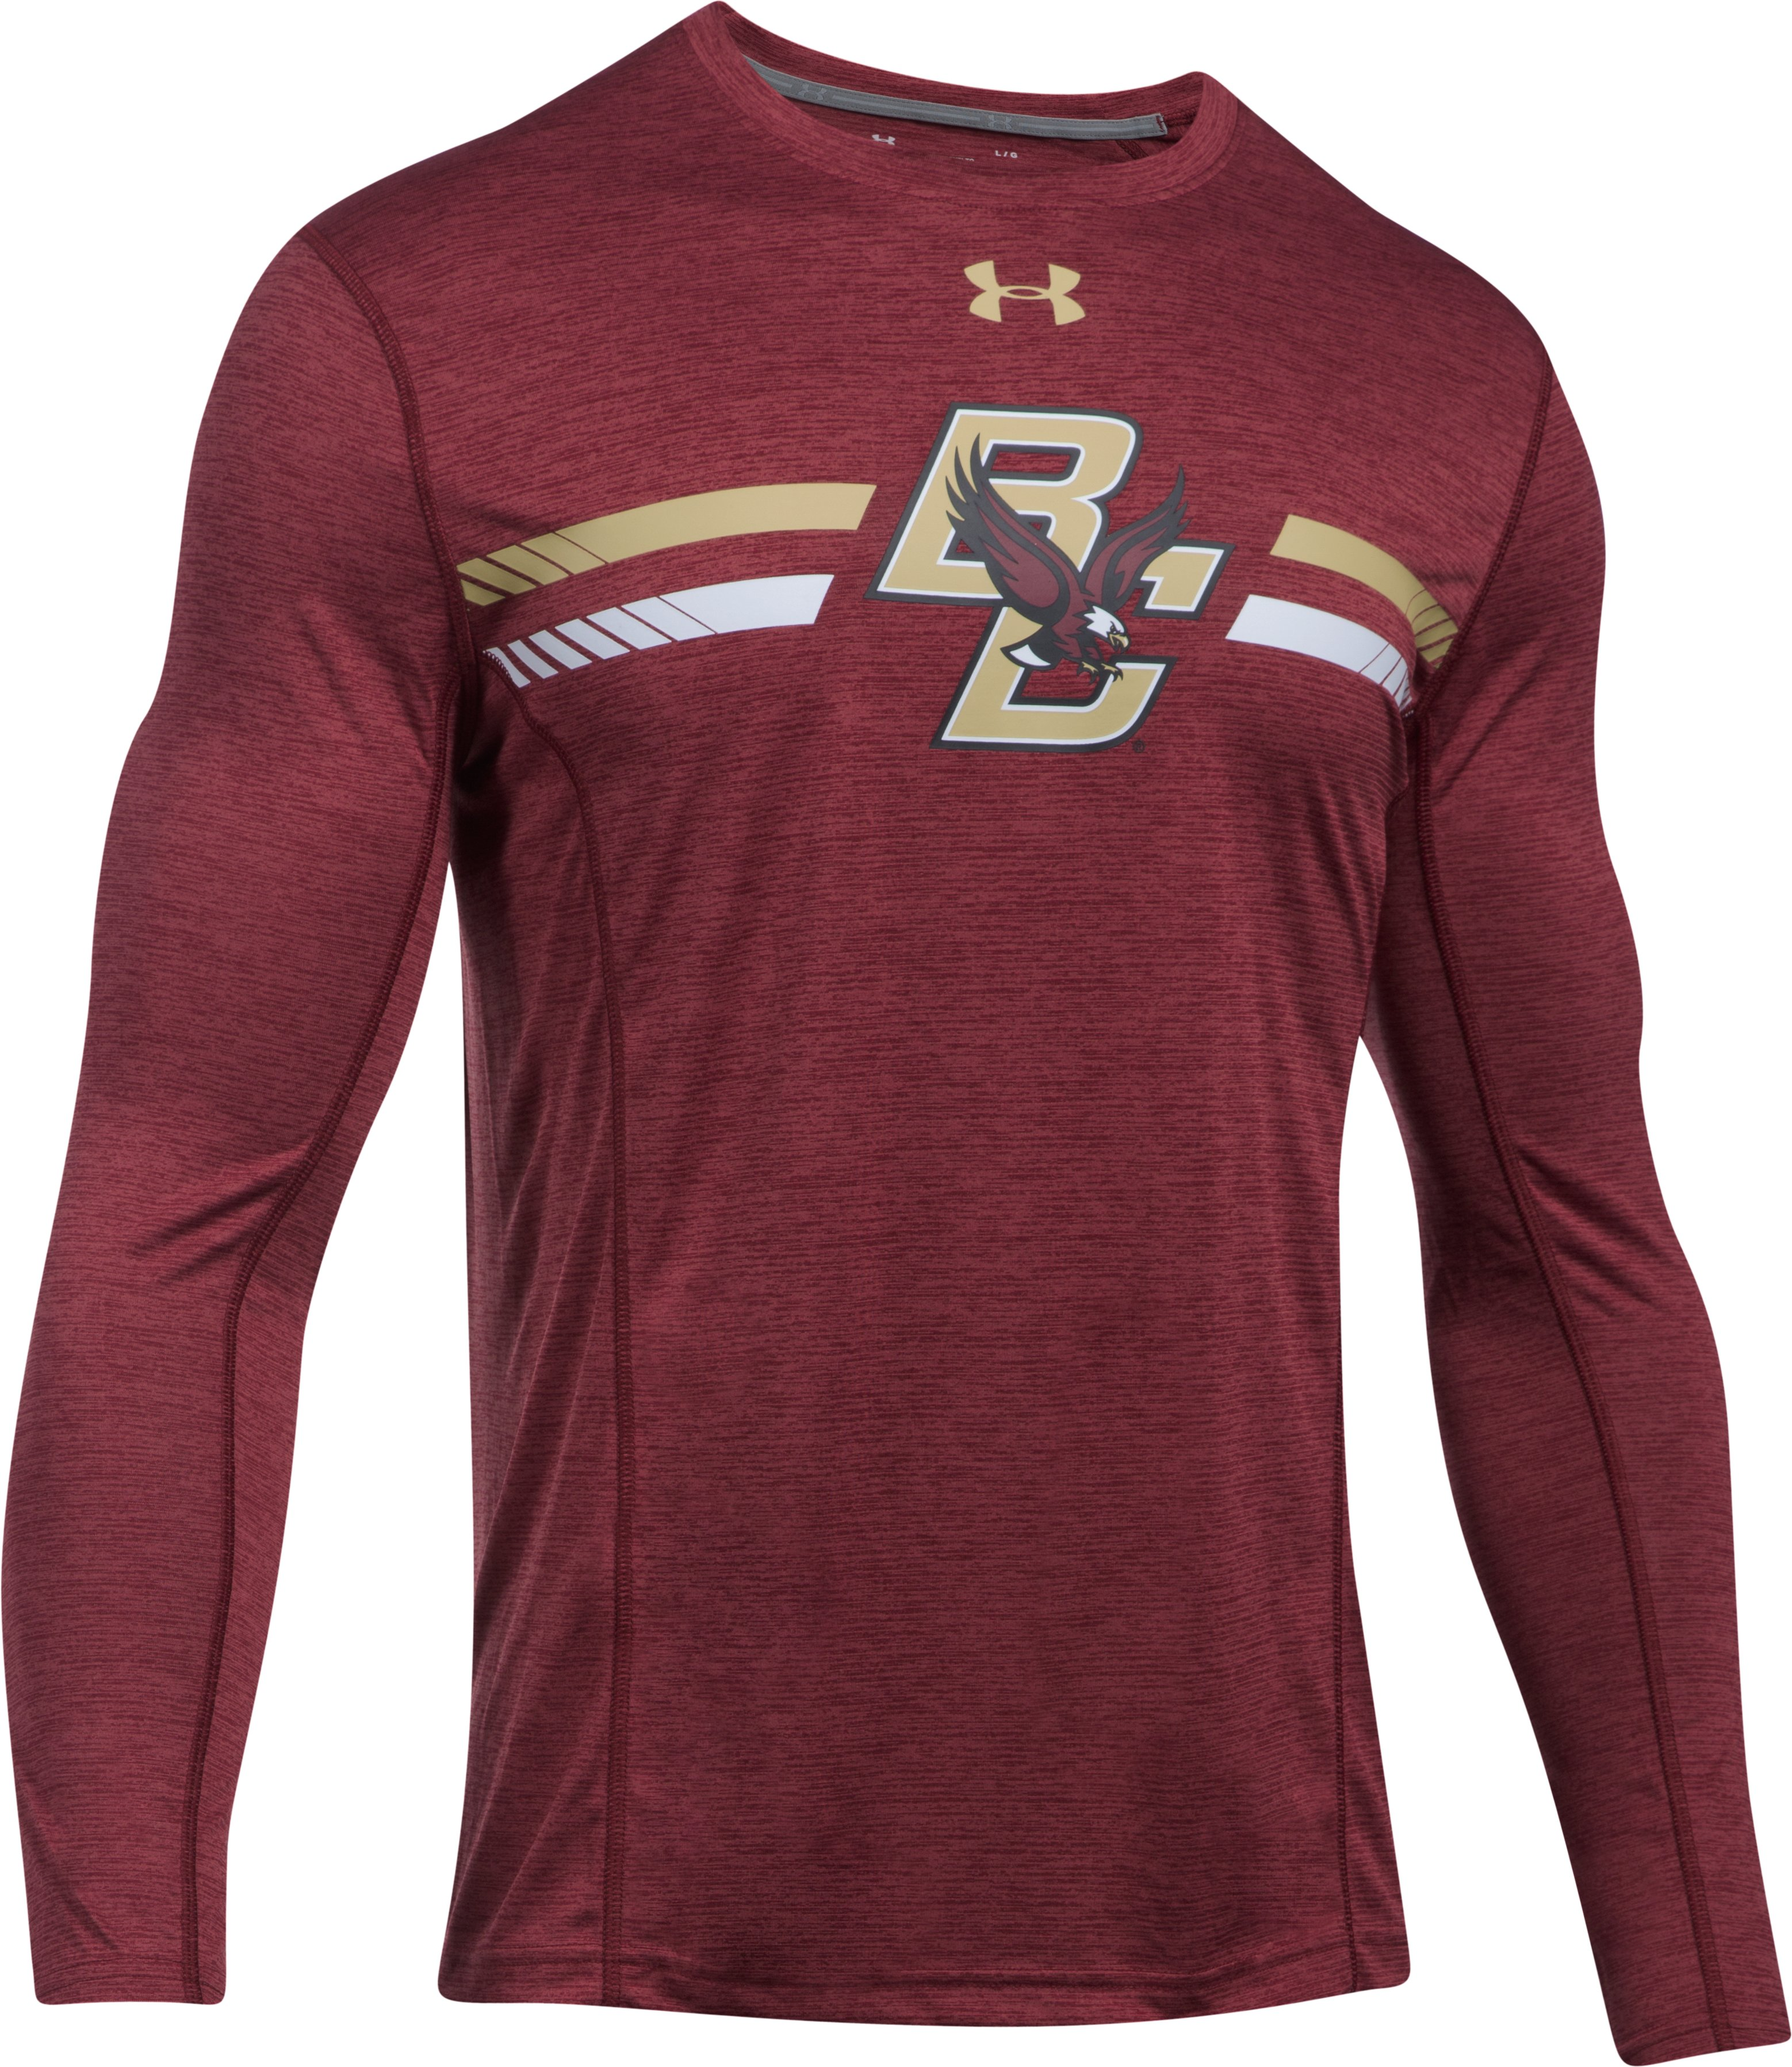 Men's Boston College Long Sleeve Training T-Shirt, Maroon